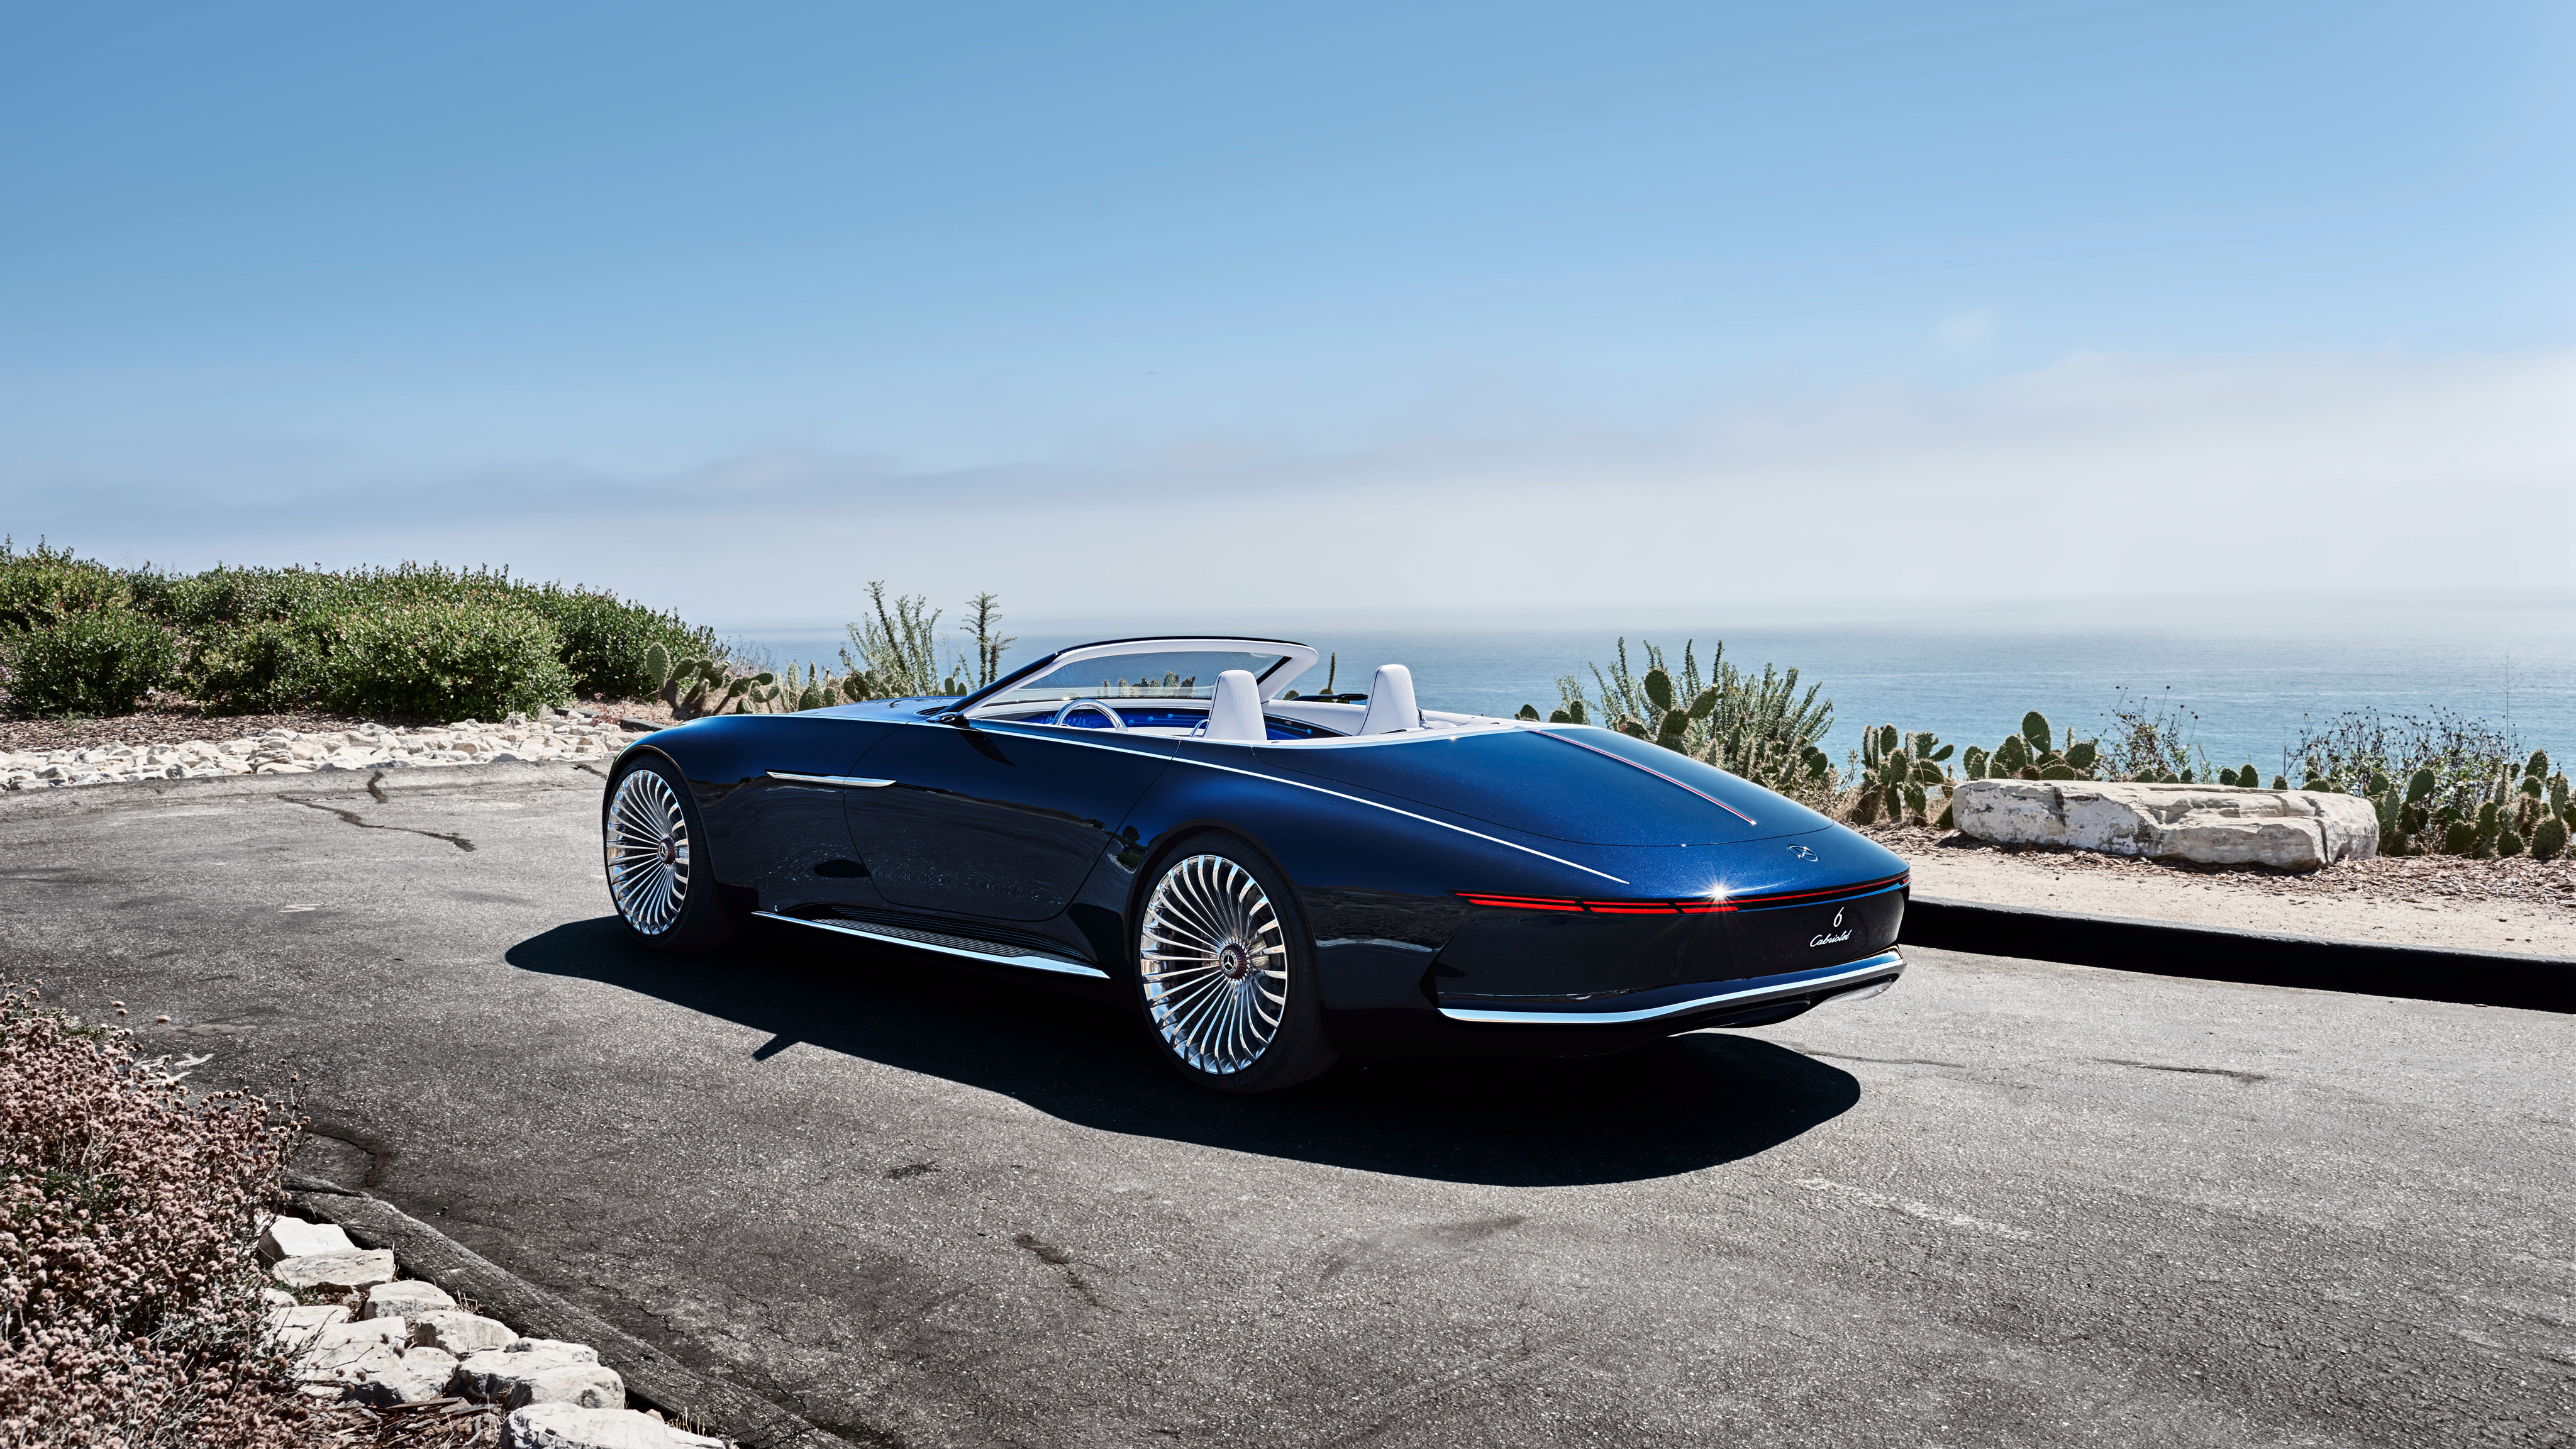 2018 Vision Mercedes Maybach 6 Cabriolet 8 Wallpaper Hd Car Wallpapers Id 8281